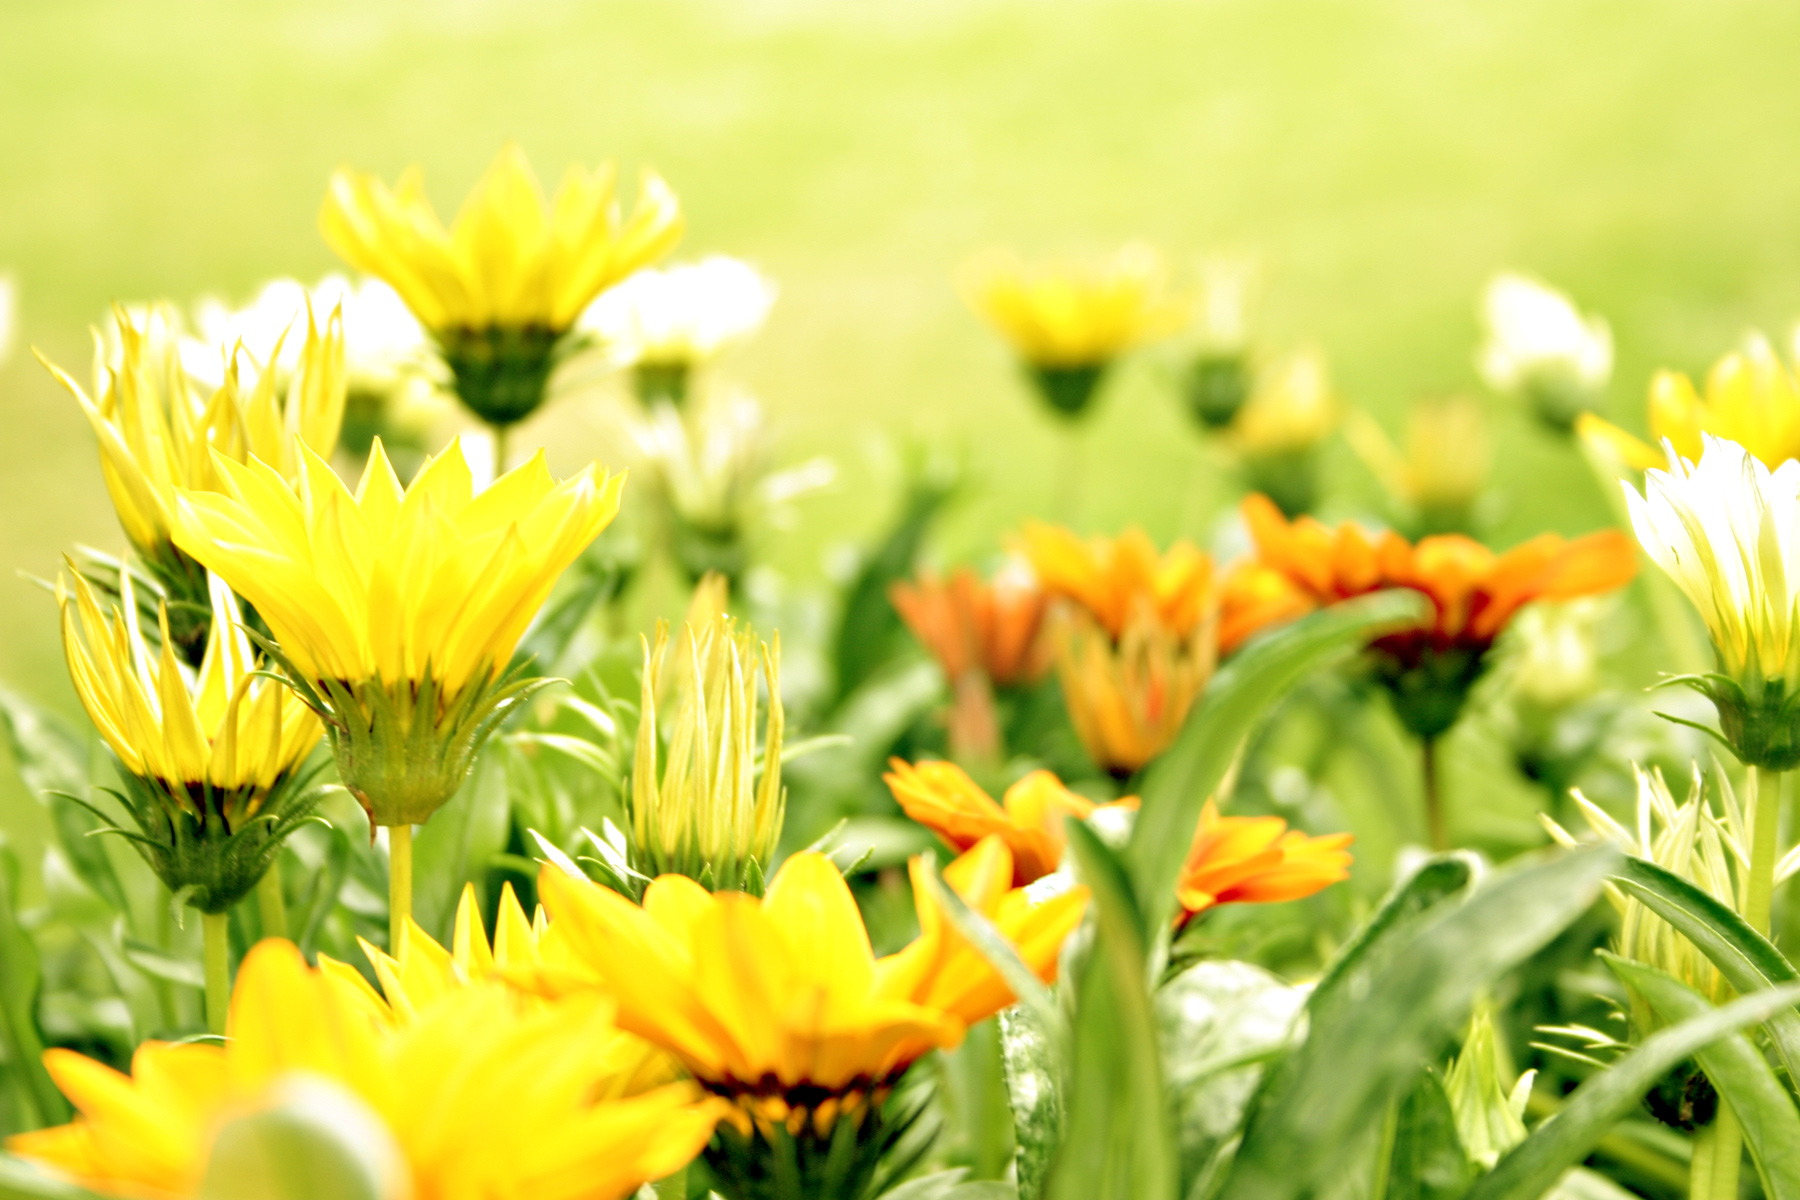 Bed of flowers, Summer, Yellow, Soft, Nature, HQ Photo